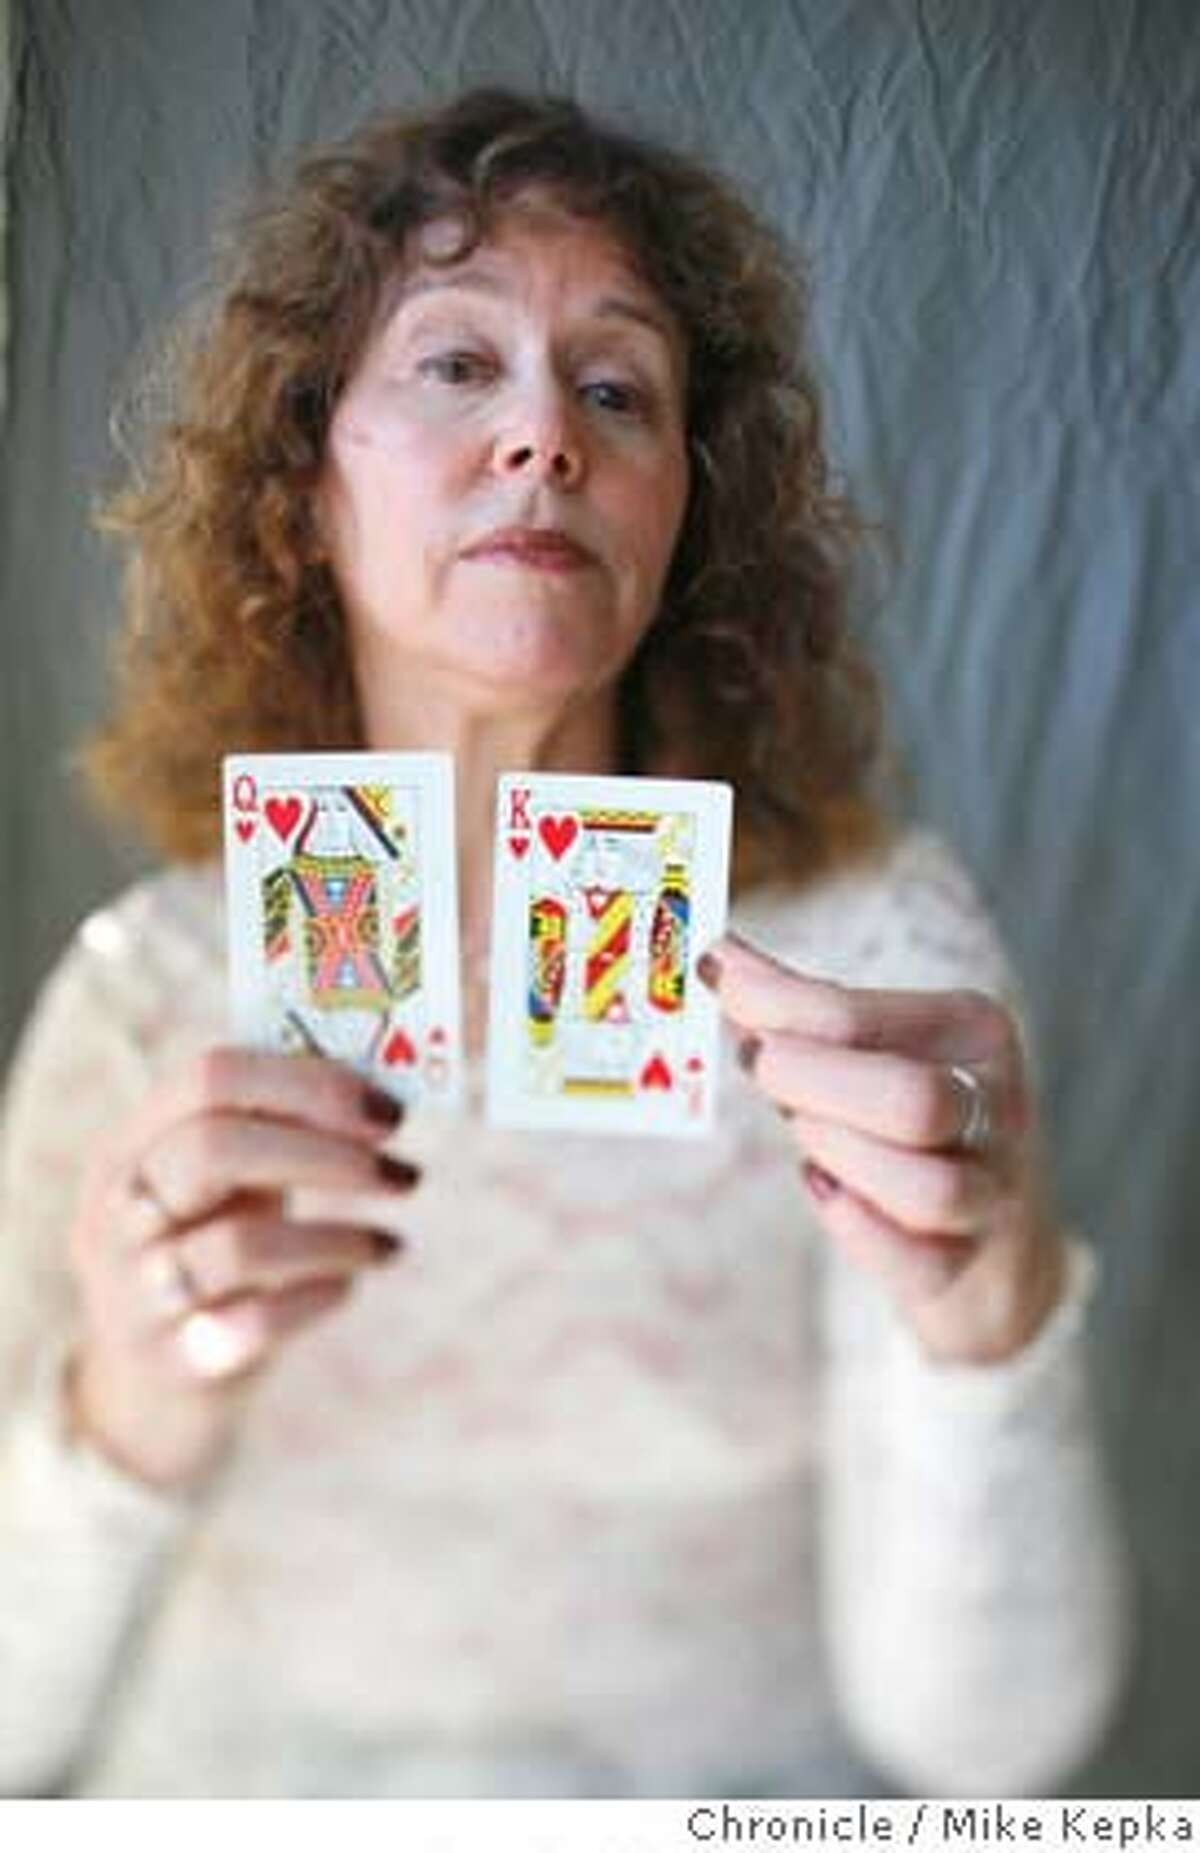 Matchmaker Marsha Winer has been a local matchmaker for 25 years and is responsible for over 230 successful couples. photo by Mike Kepka / San Francisco Chronicle